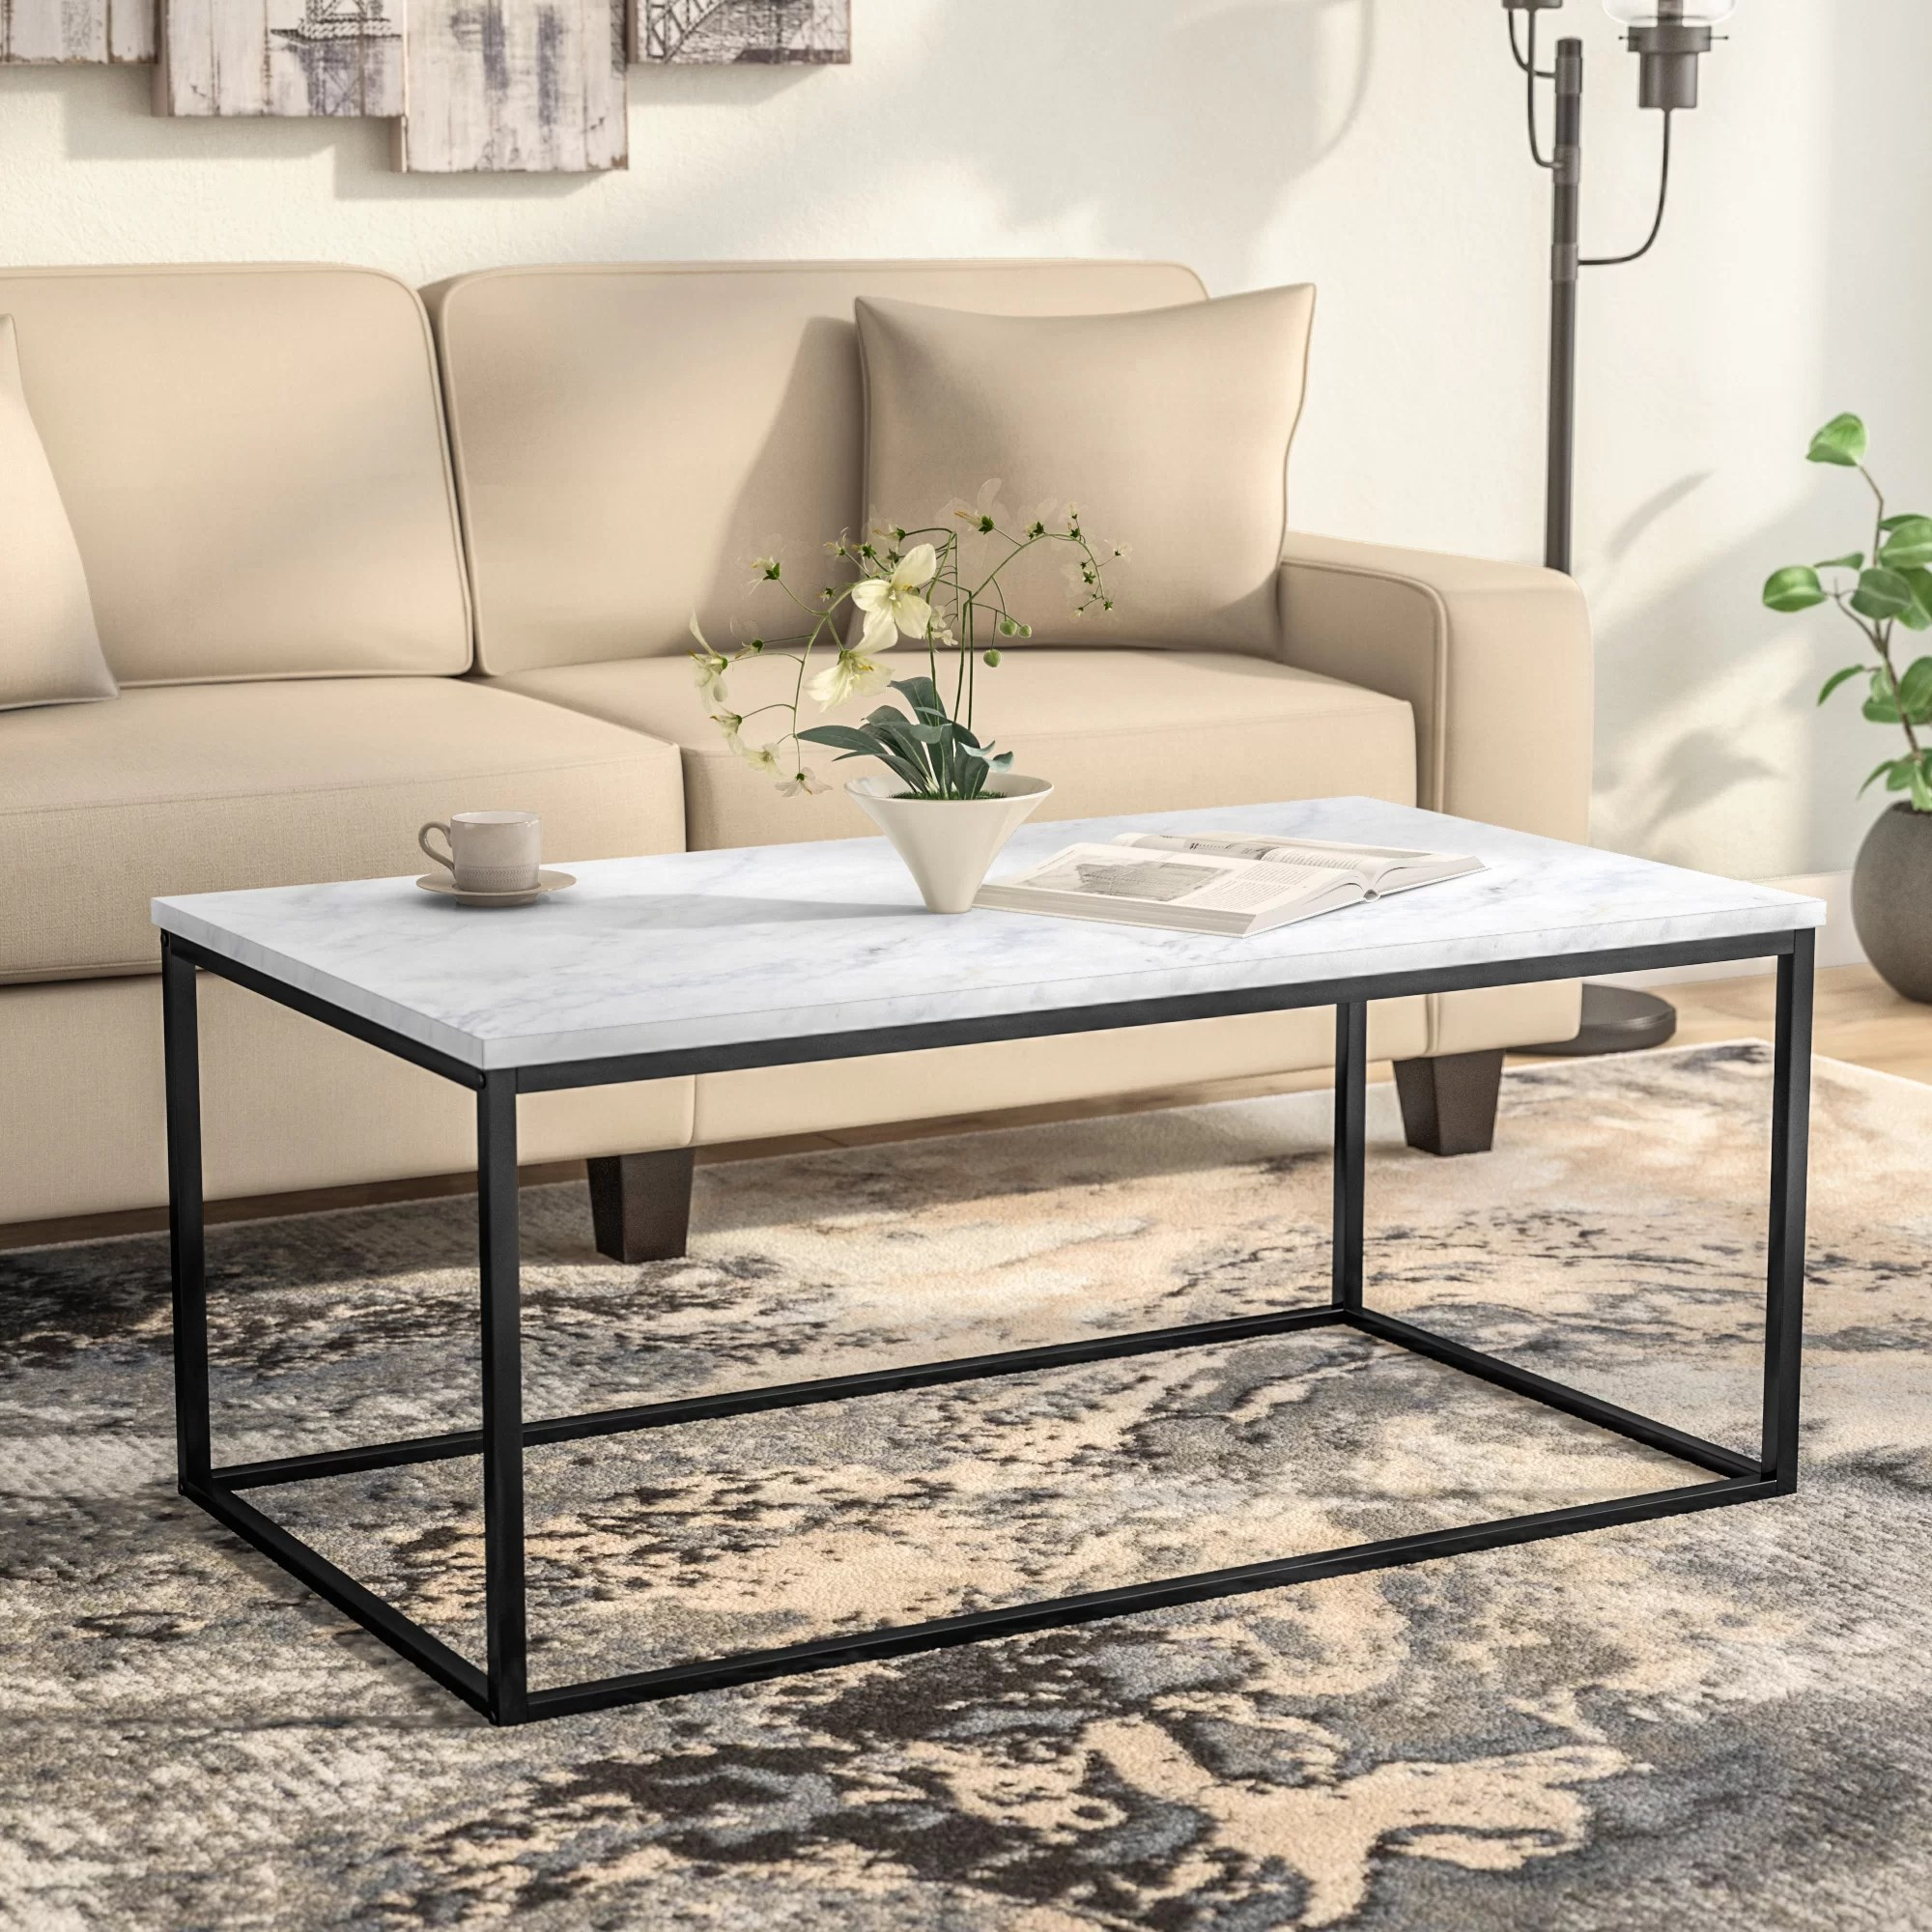 living room layout without coffee table candice olson decorating ideas arianna reviews joss main